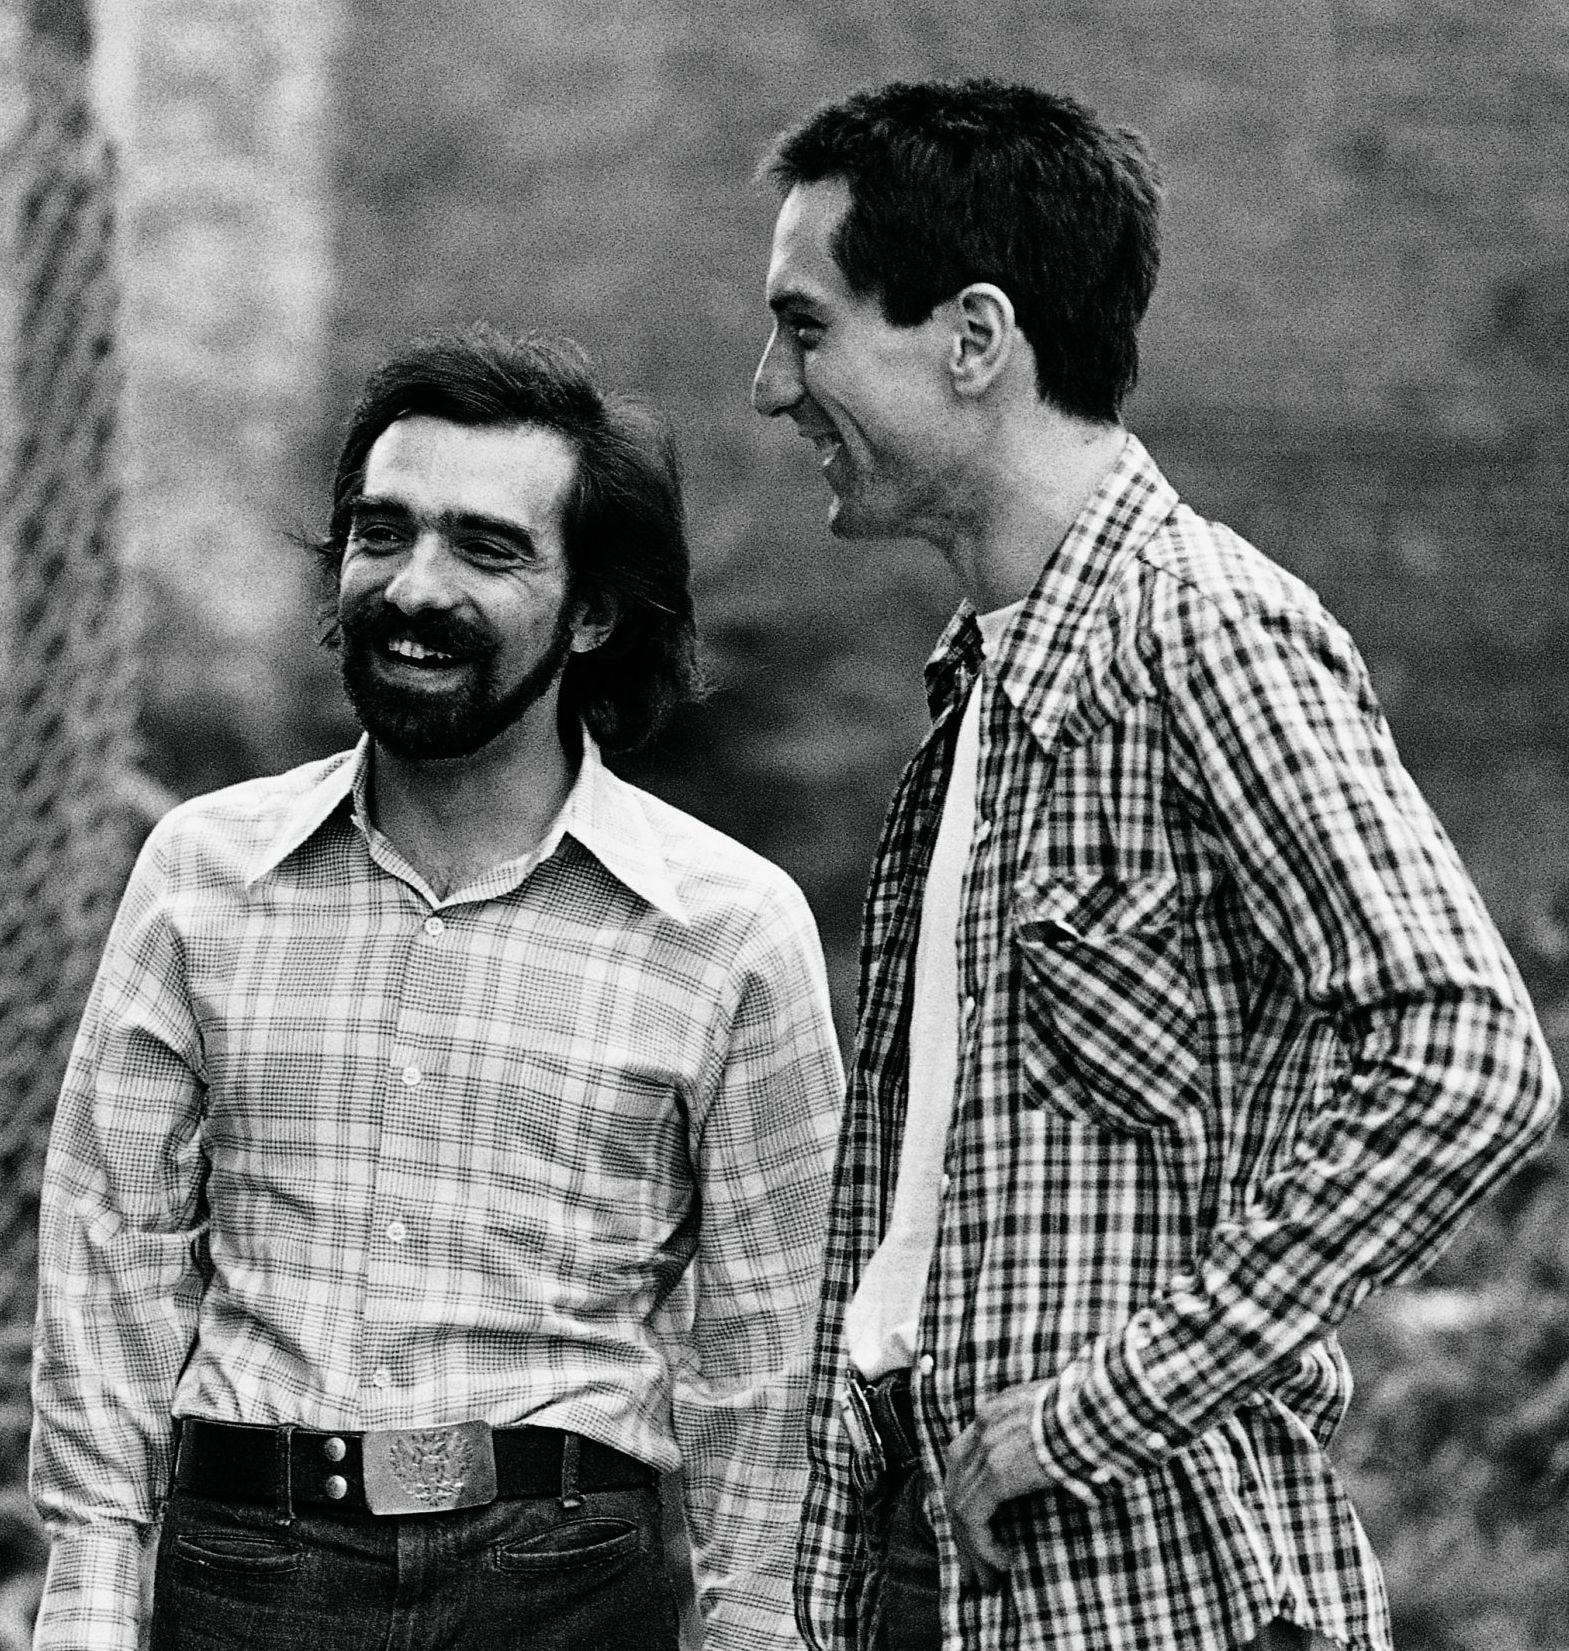 Paul Schrader Martin Scorsese and Robert De Niro on the set of Taxi Driver 24 Things You Didn't Know About Robert De Niro